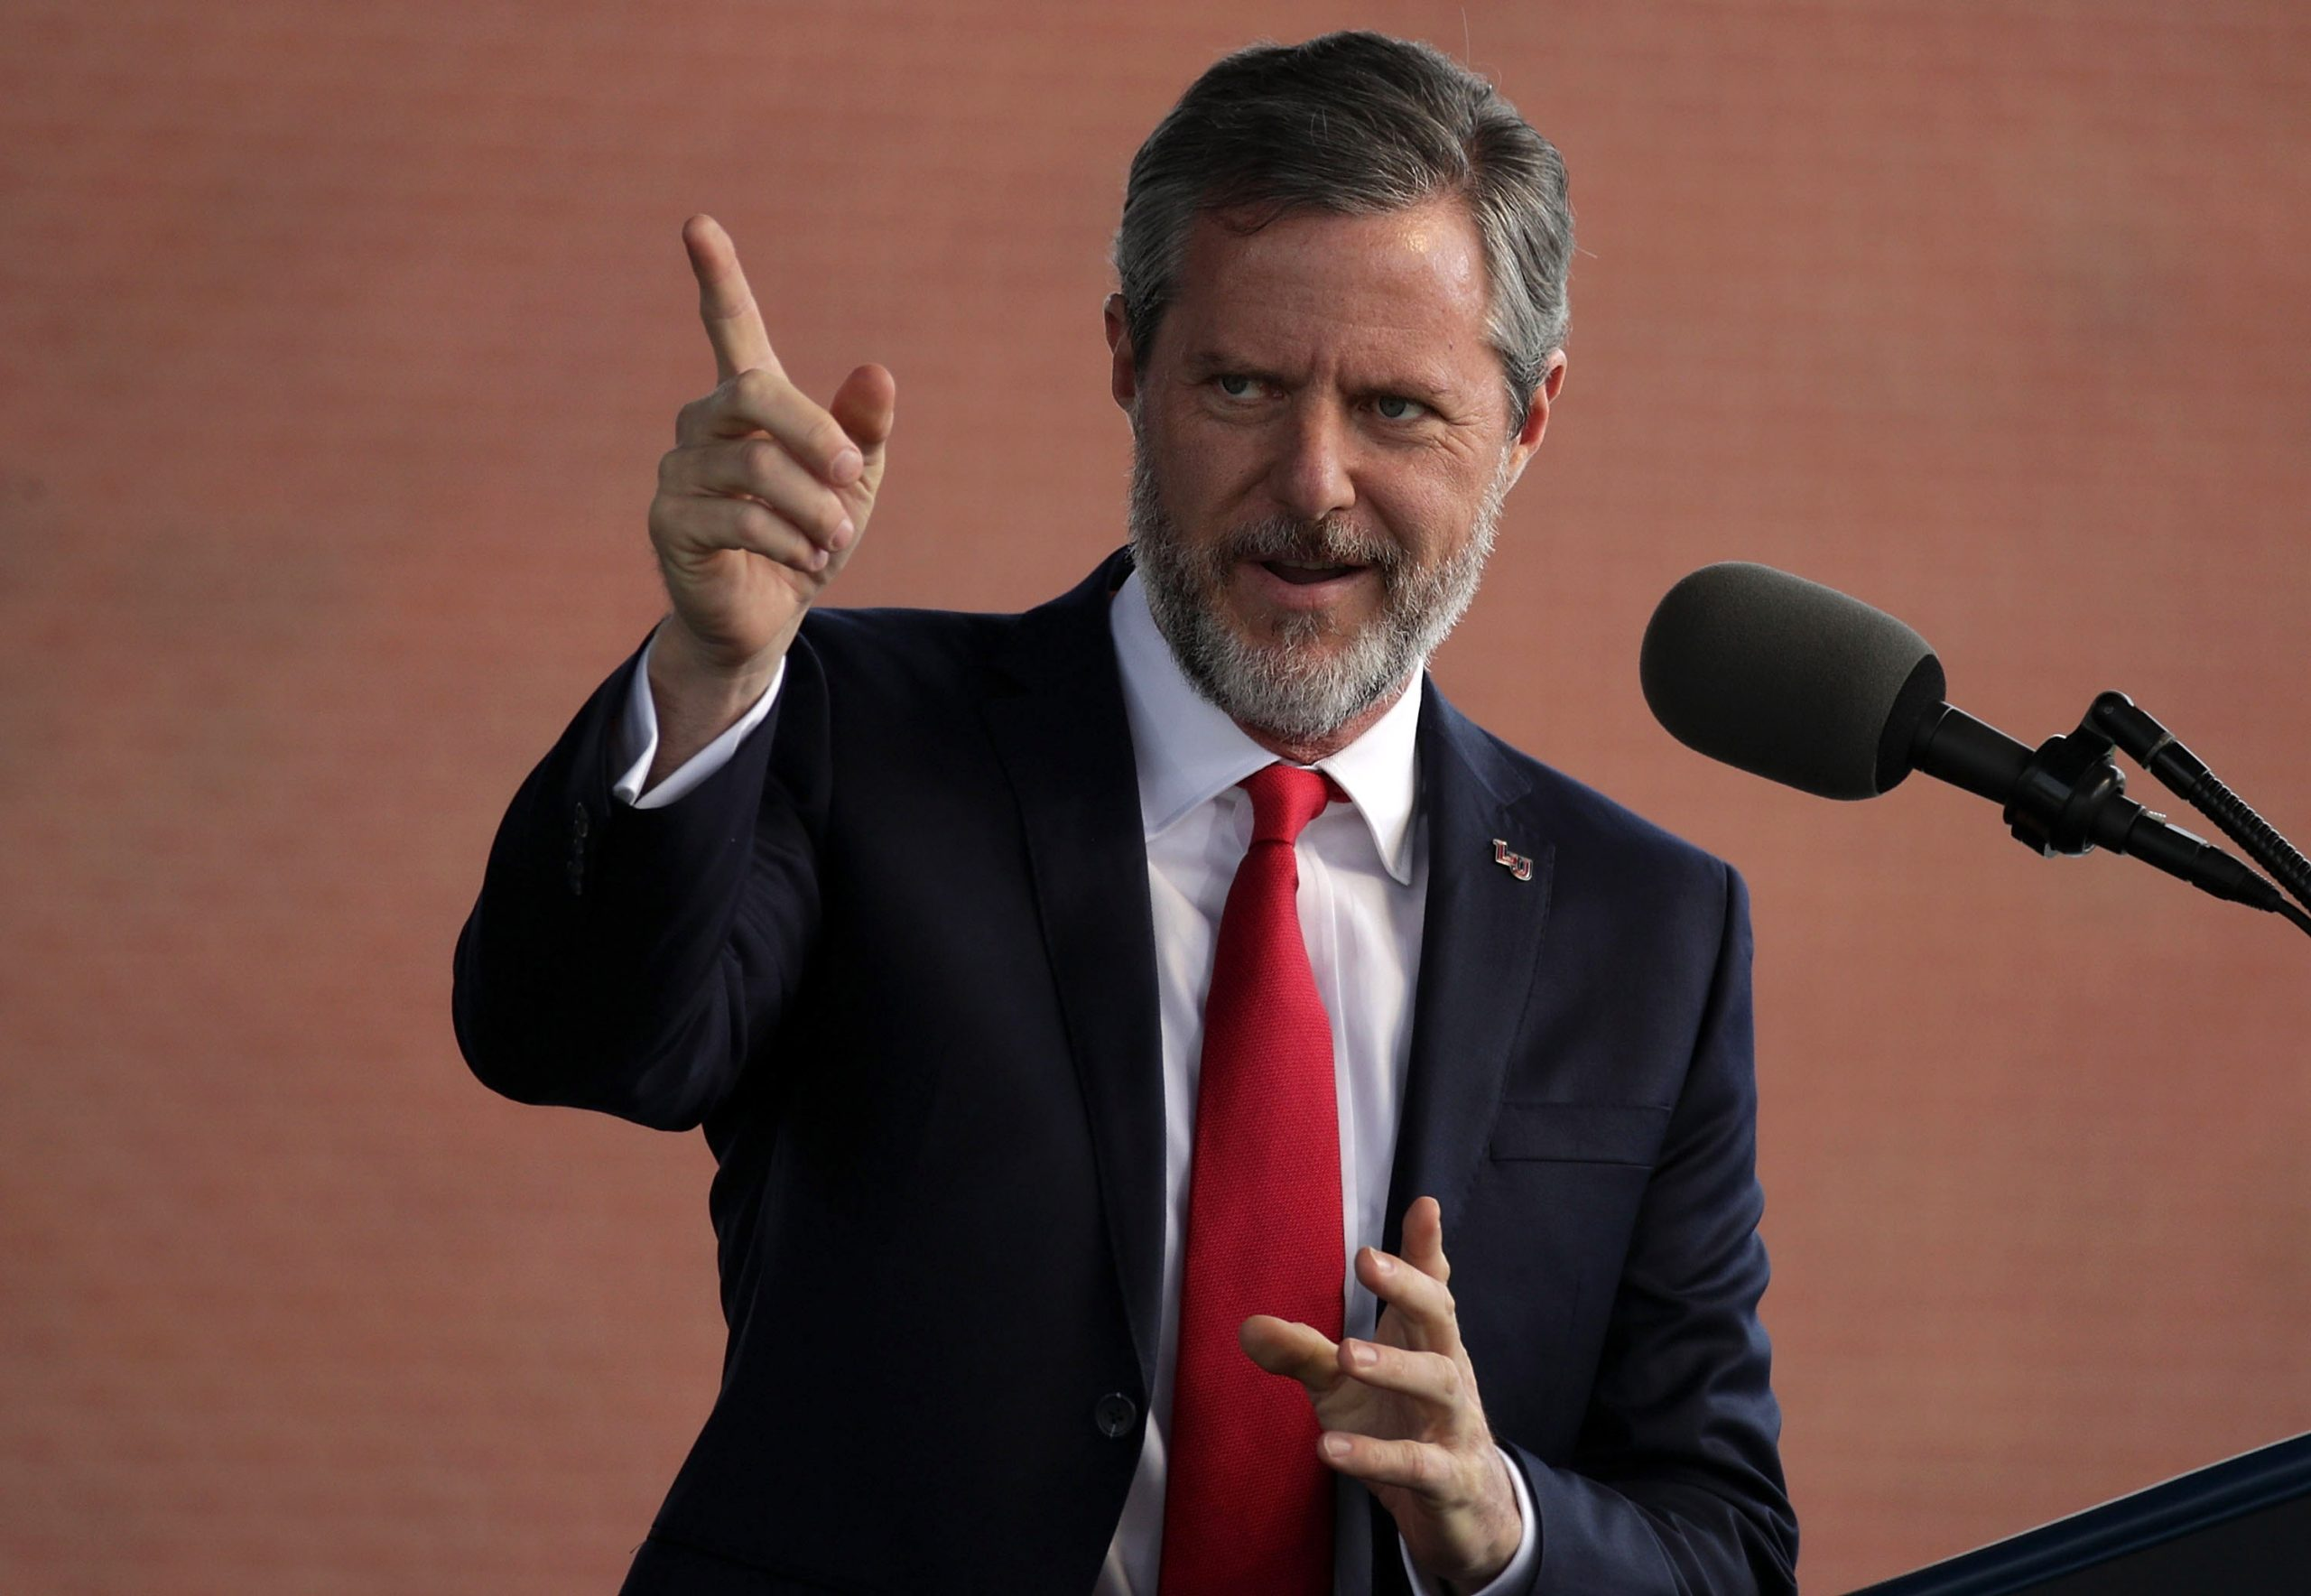 Liberty University sues Falwell for $10M, in sharp break with former president